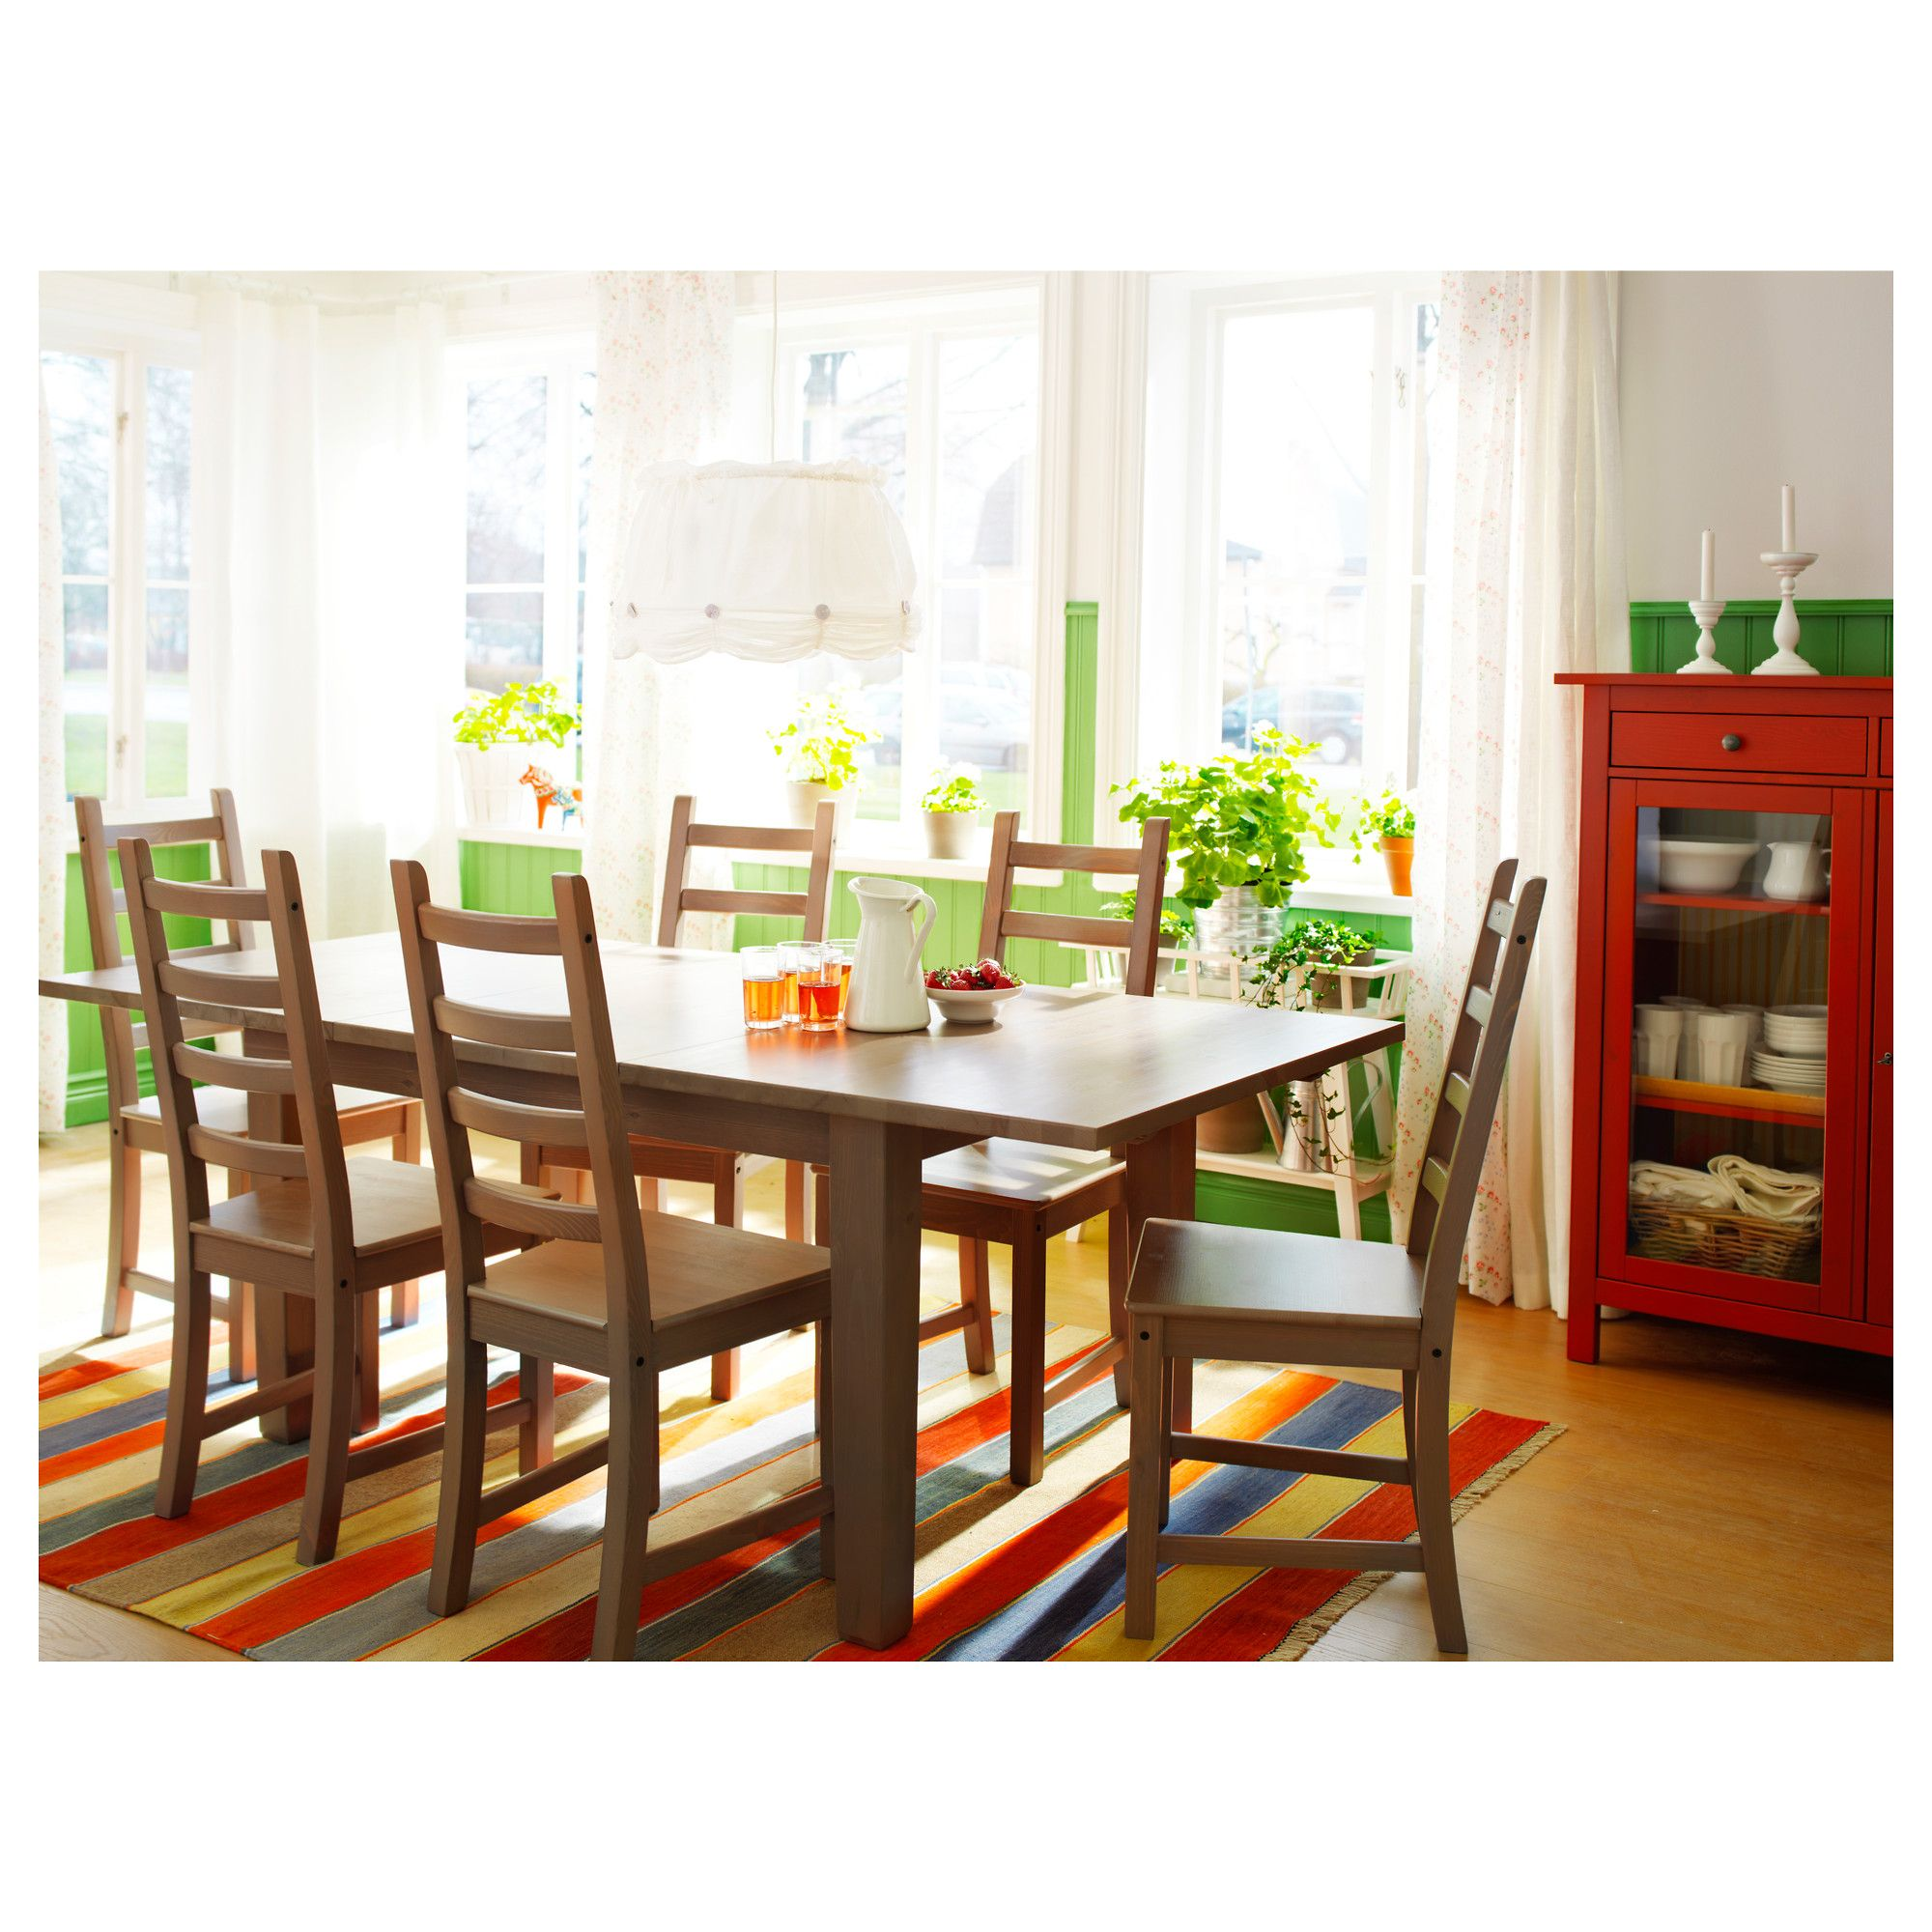 Fresh Kitchen Ikea Kitchen Table And Chairs Set With: Chair KAUSTBY Antique Stain In 2019